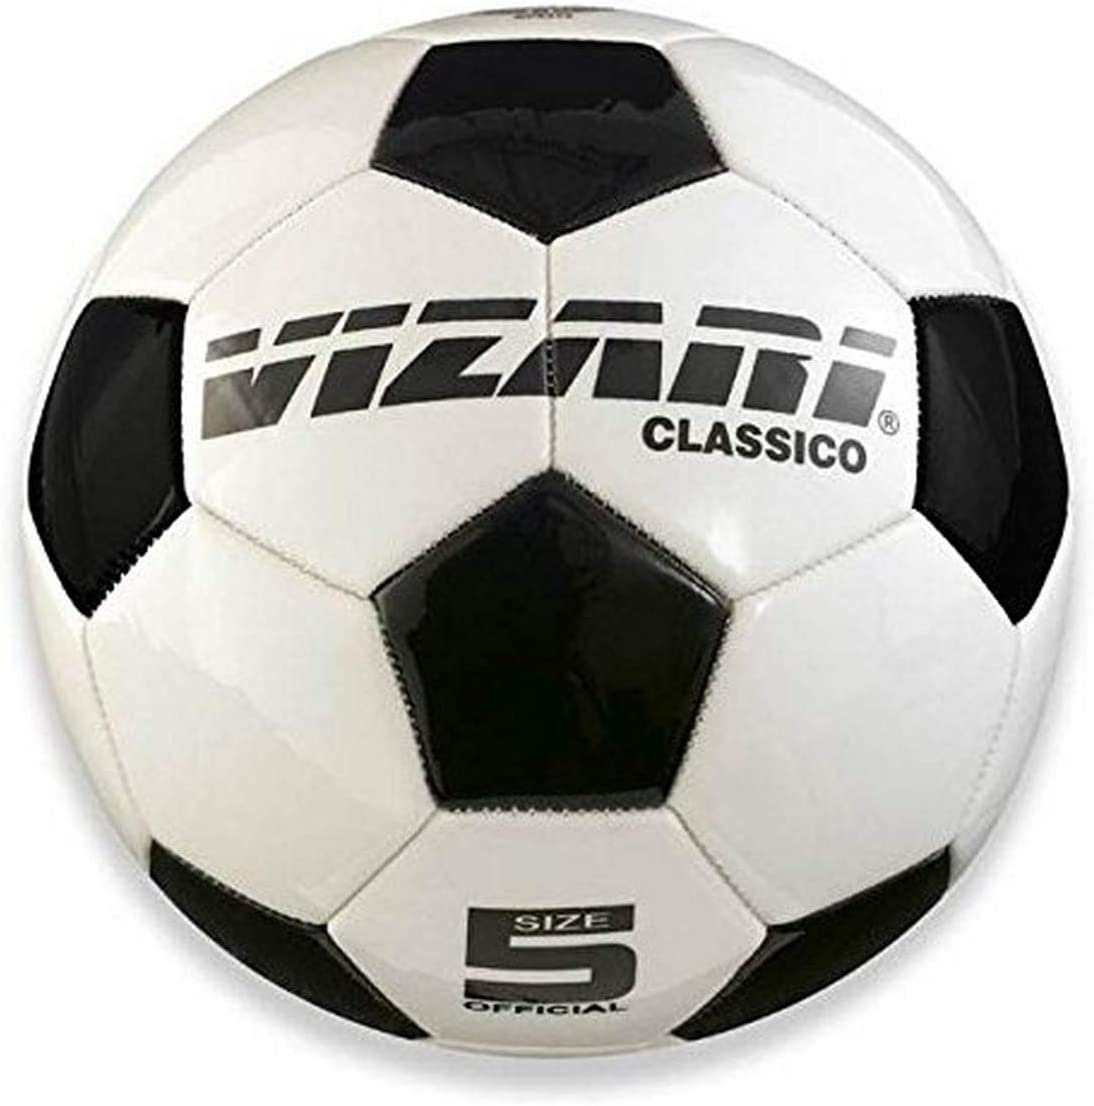 4 years warranty Vizari Classico Ball Free shipping anywhere in the nation Soccer